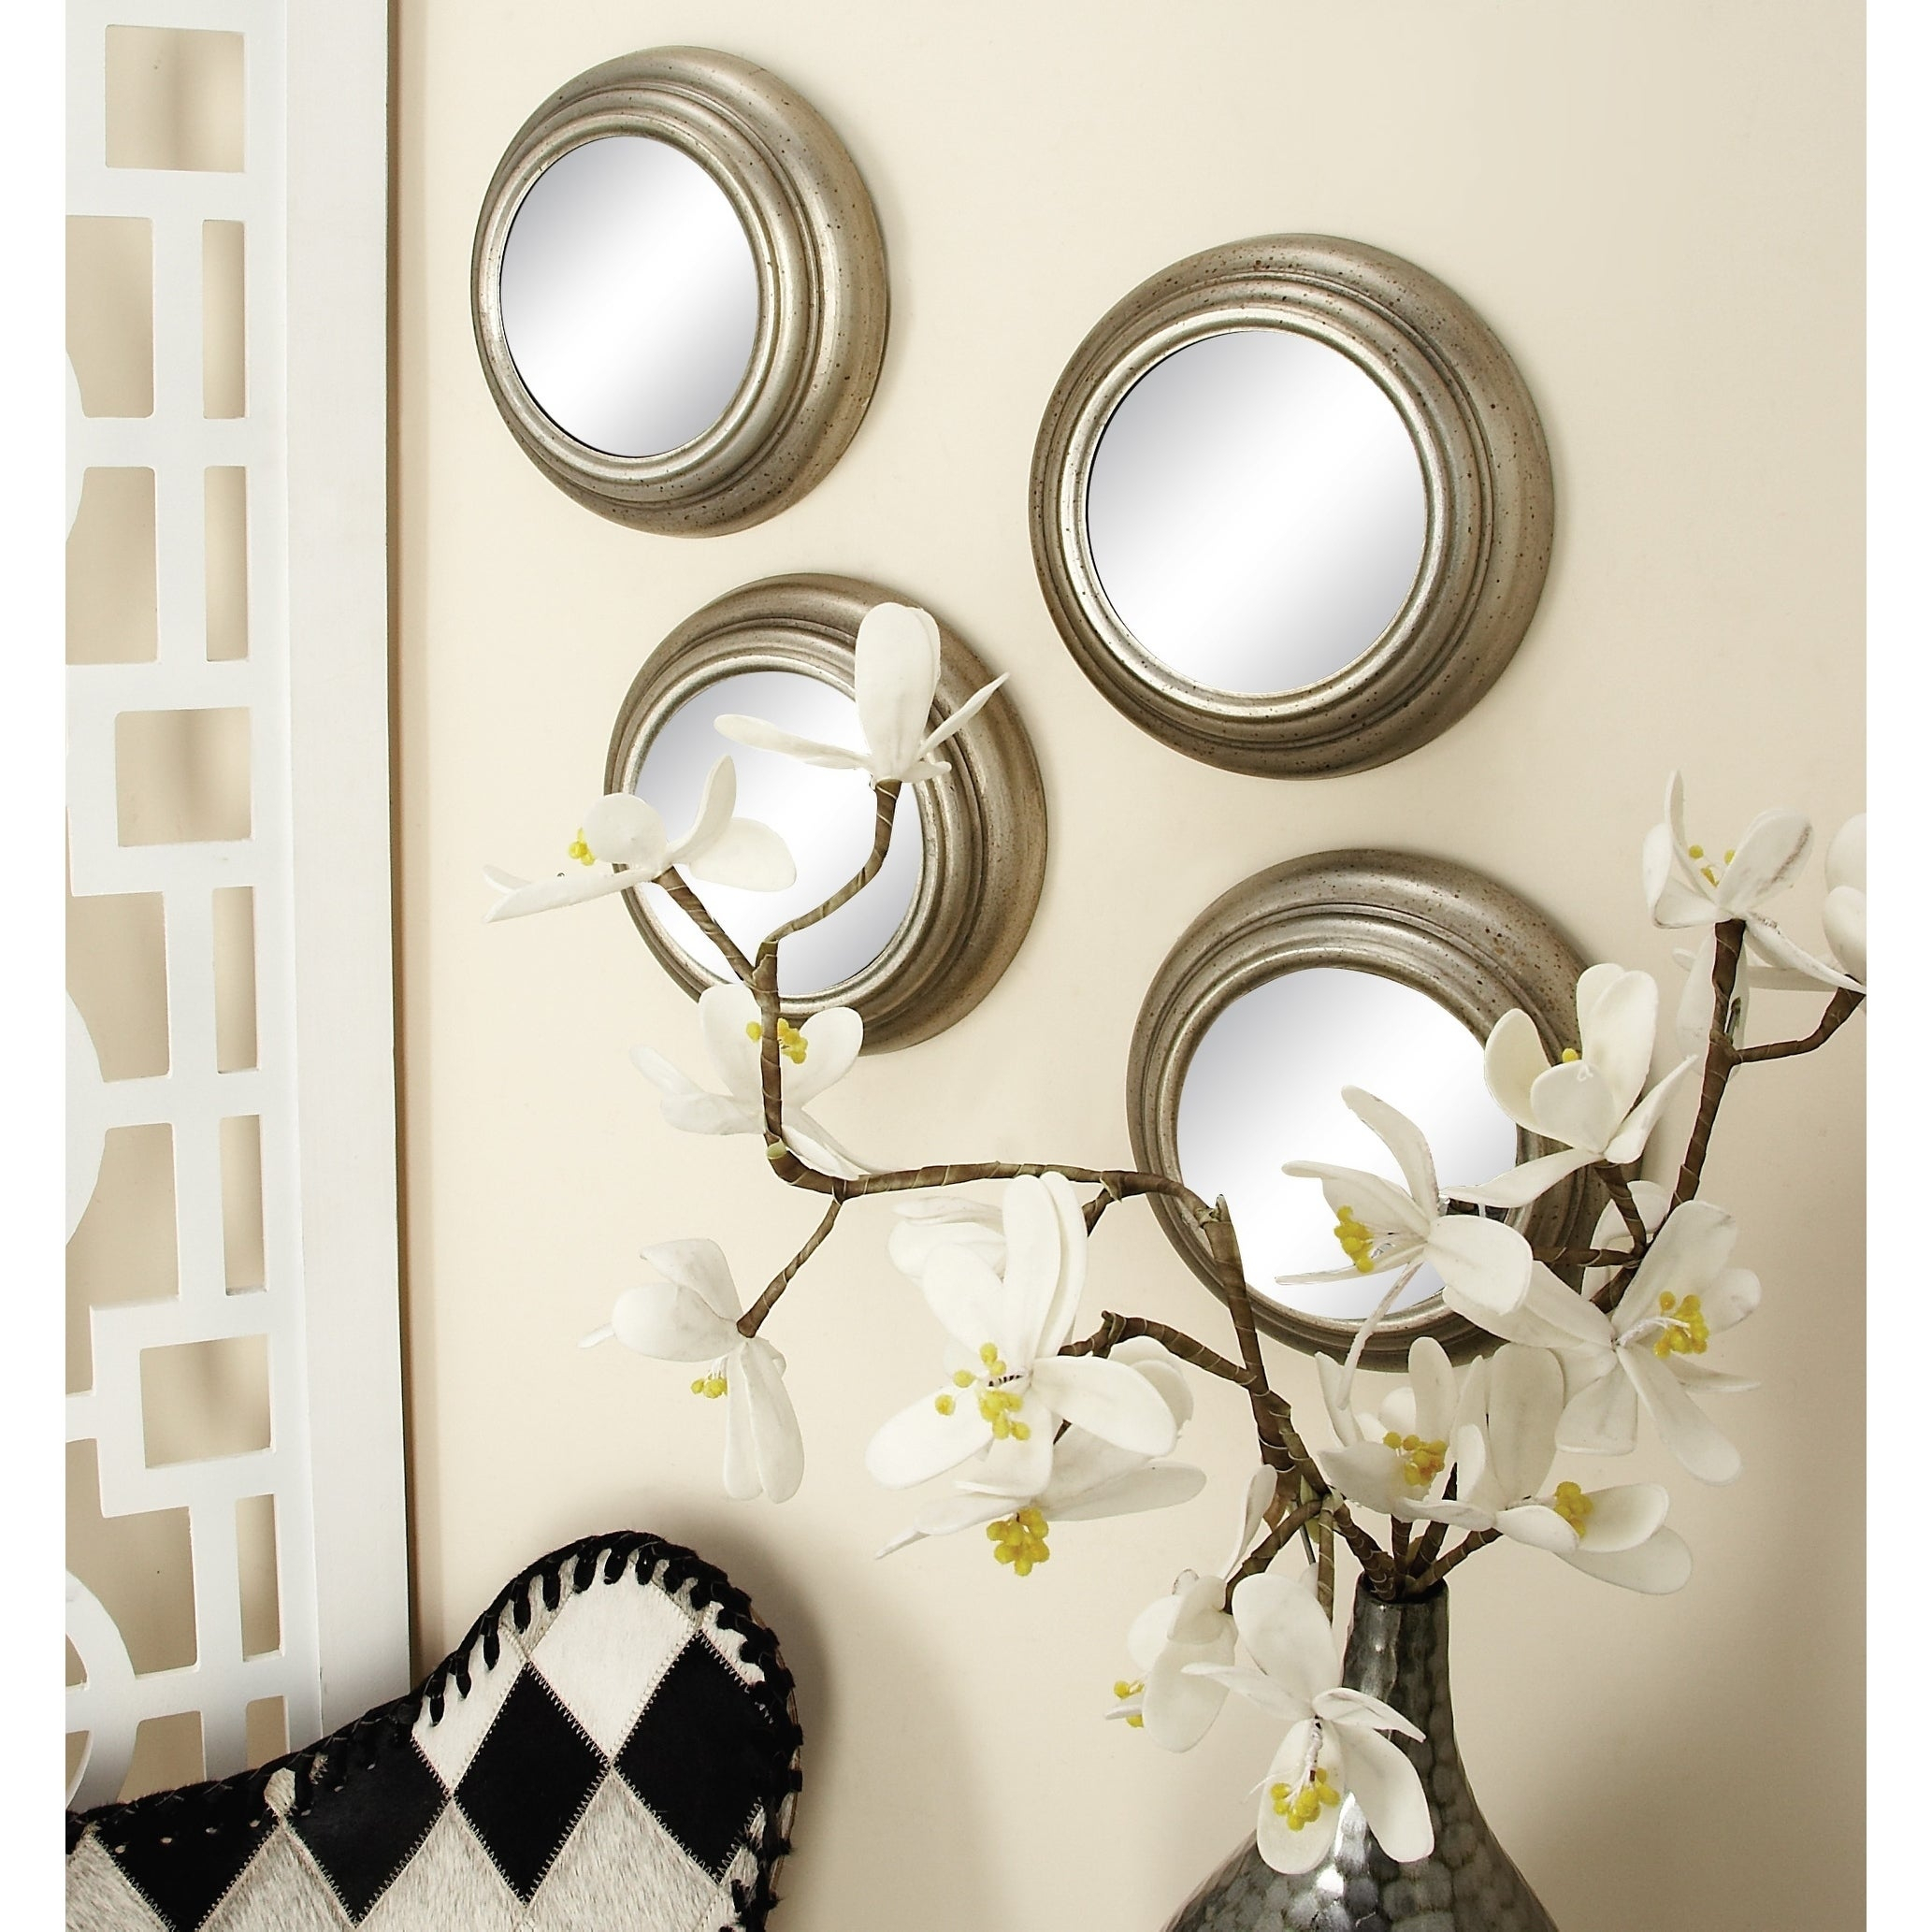 Set Of 12 Contemporary Round Decorative Wall Mirrorsstudio 350 – Silver Inside Wall Mirrors (View 5 of 20)